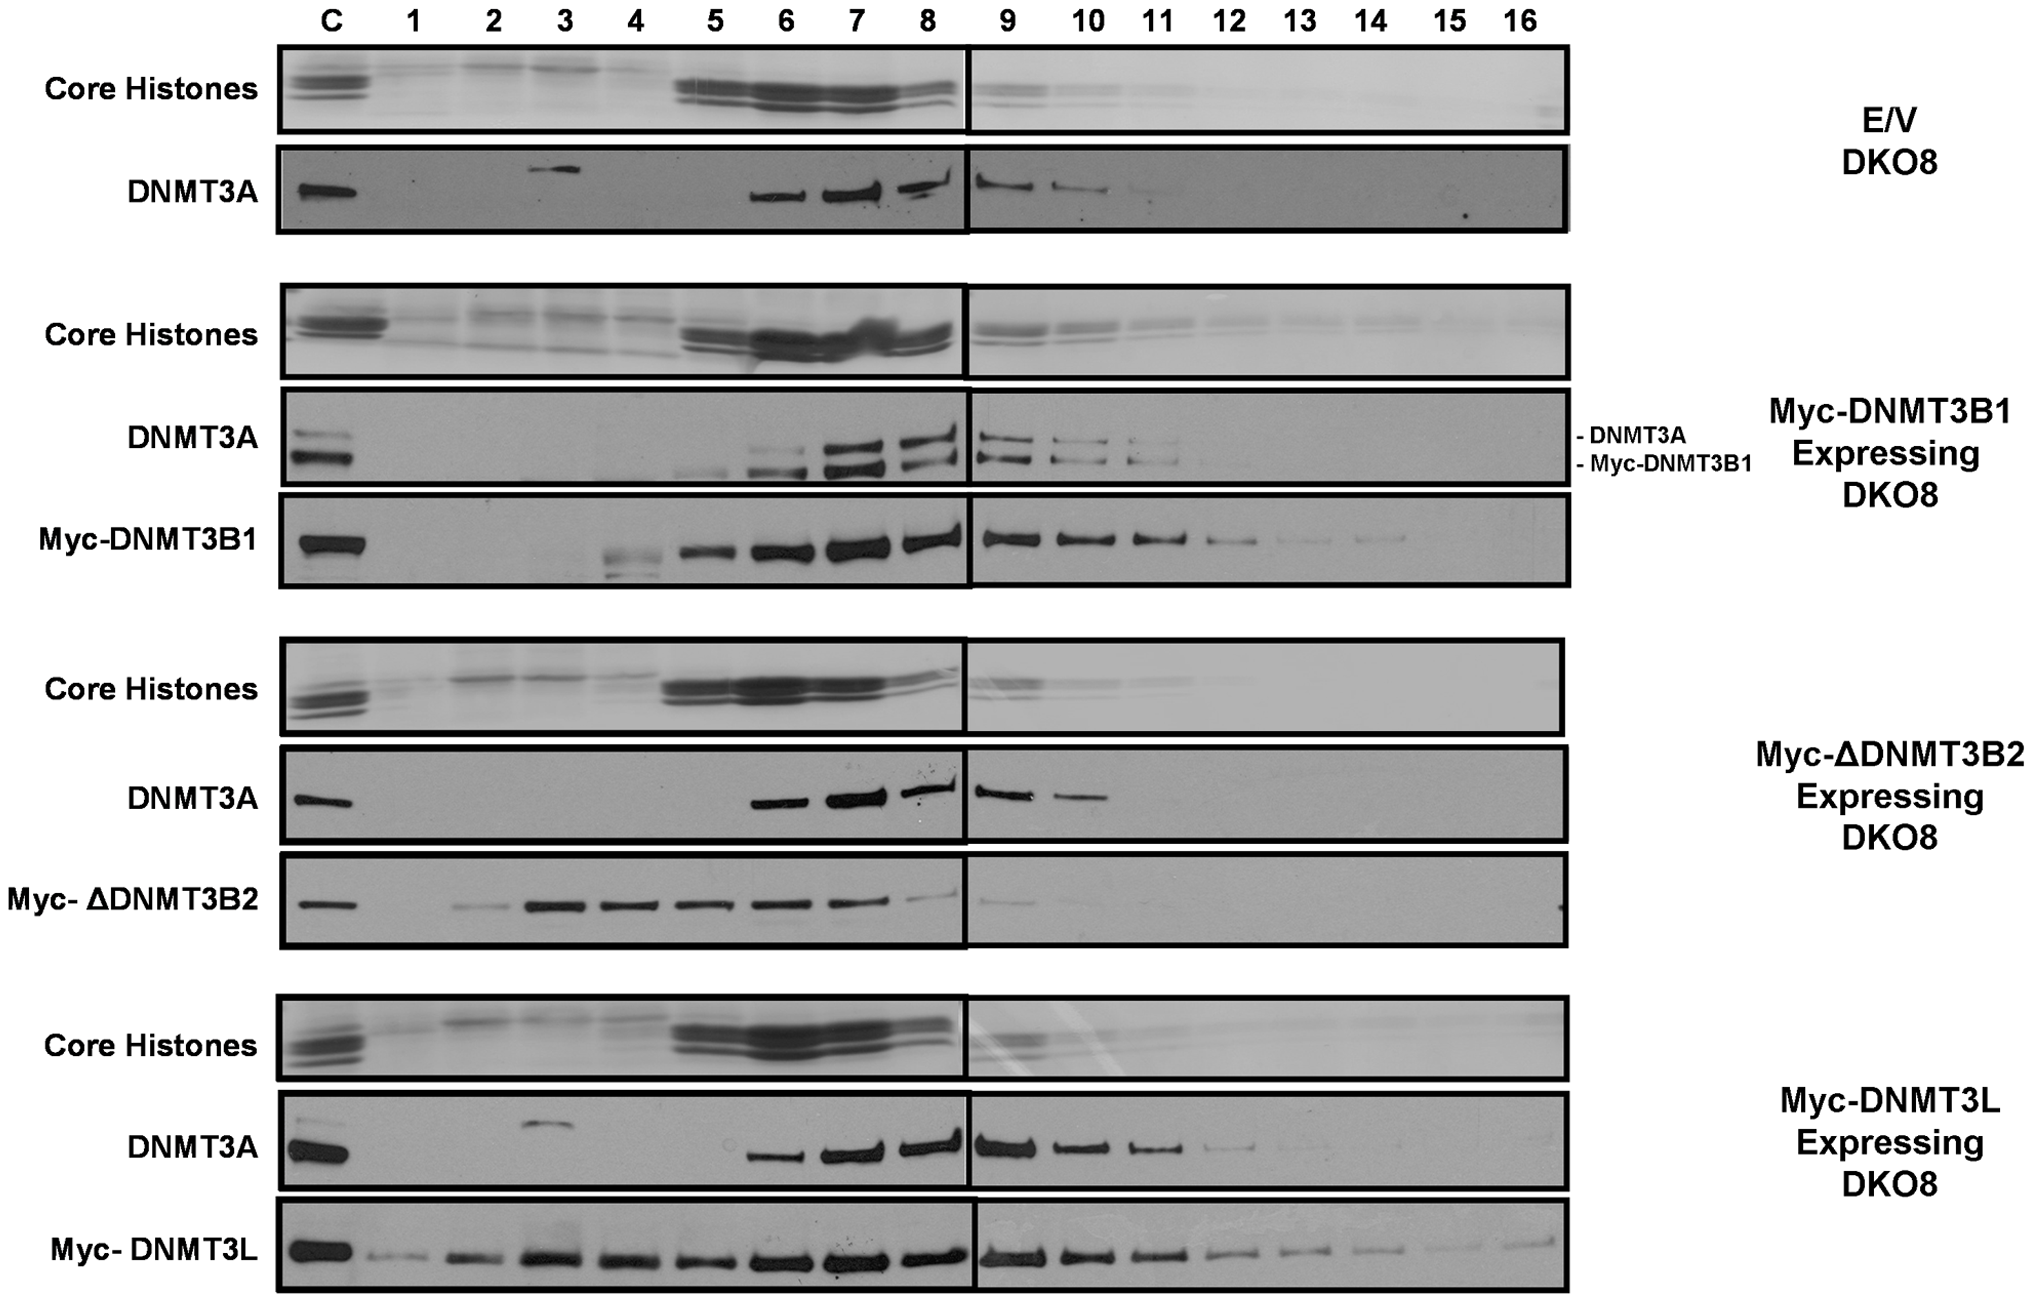 The increased level of DNMT3A protein in infected DKO cells, which have increased levels of DNA methylation, remains tightly bound to nucleosomes.